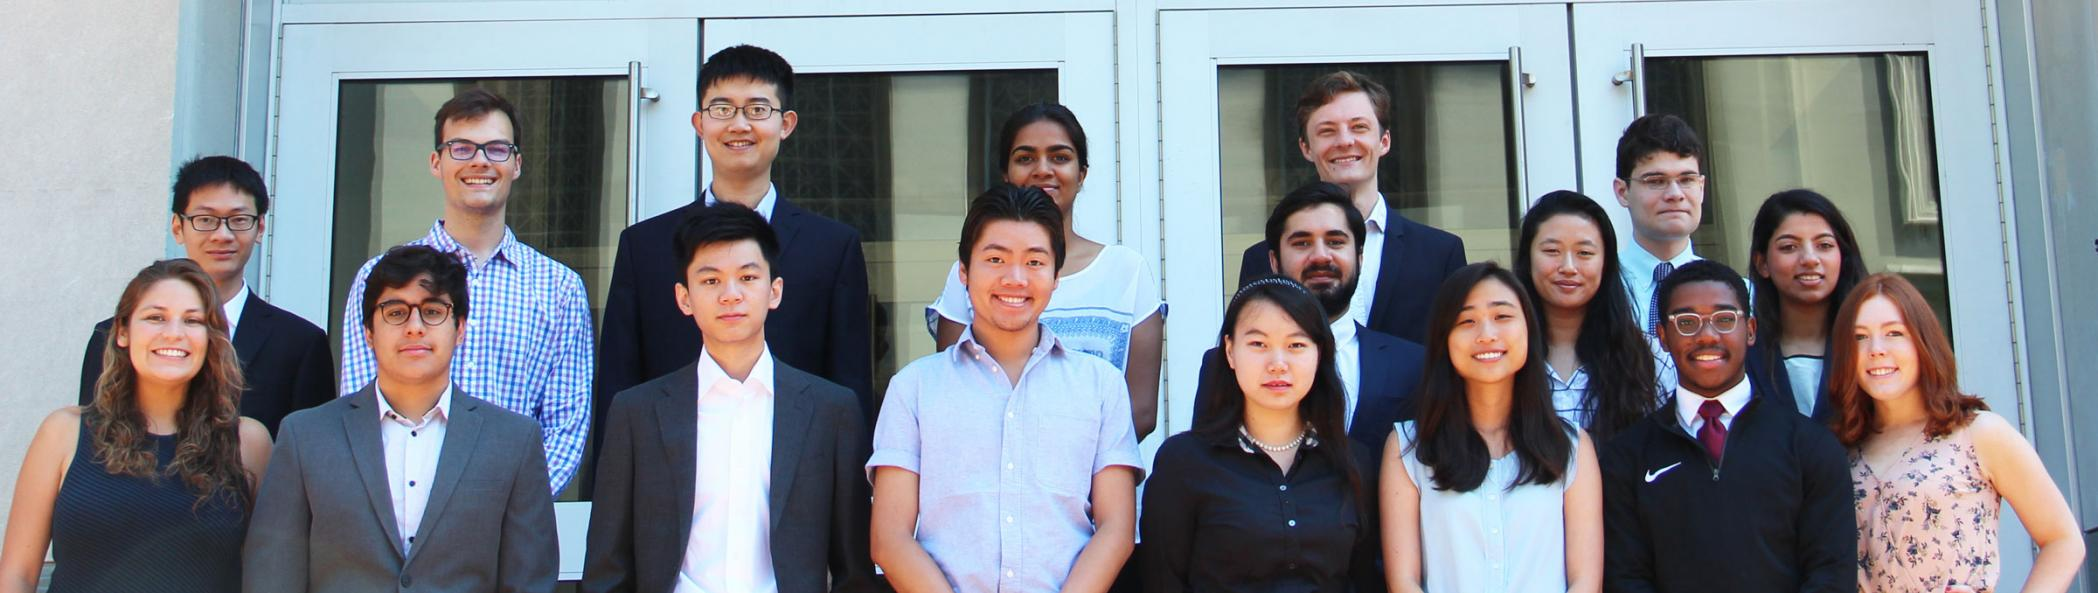 Columbia Business School's Research Interns